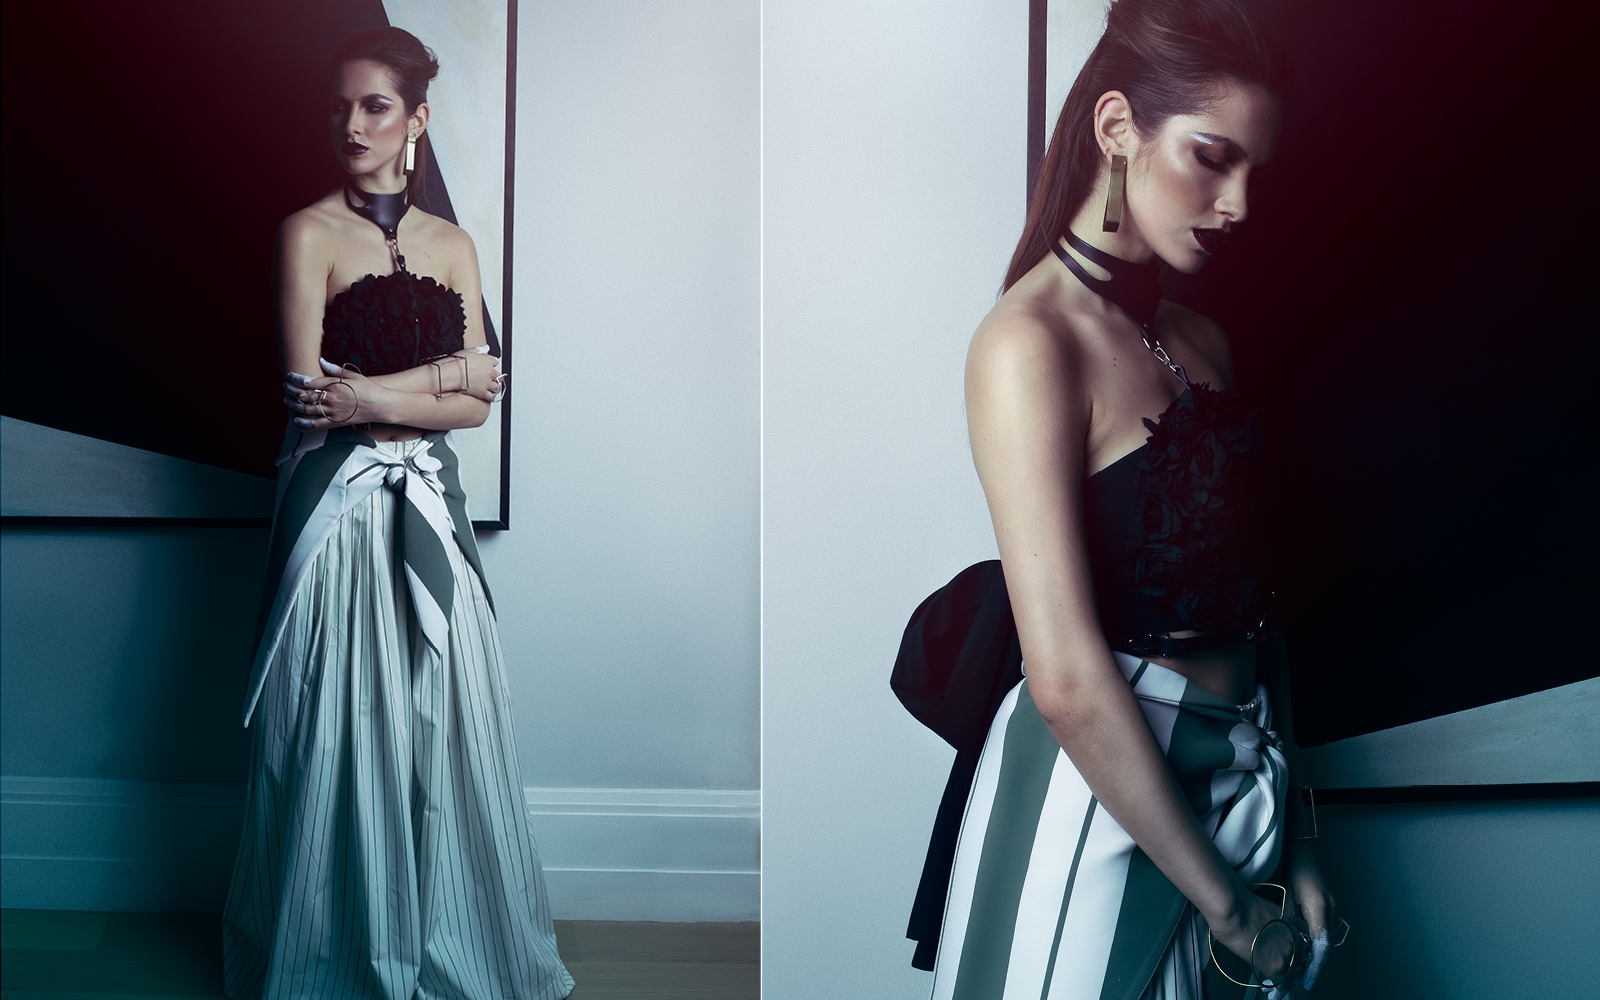 Harness ZANA BAYNE / Top MONSE / Wrap Skirt ANDREA JIAPEI LI / Pants MONSE / Earrings AOKO SU / Bracelets AOKO SU / Rings XIAOHE SHEN